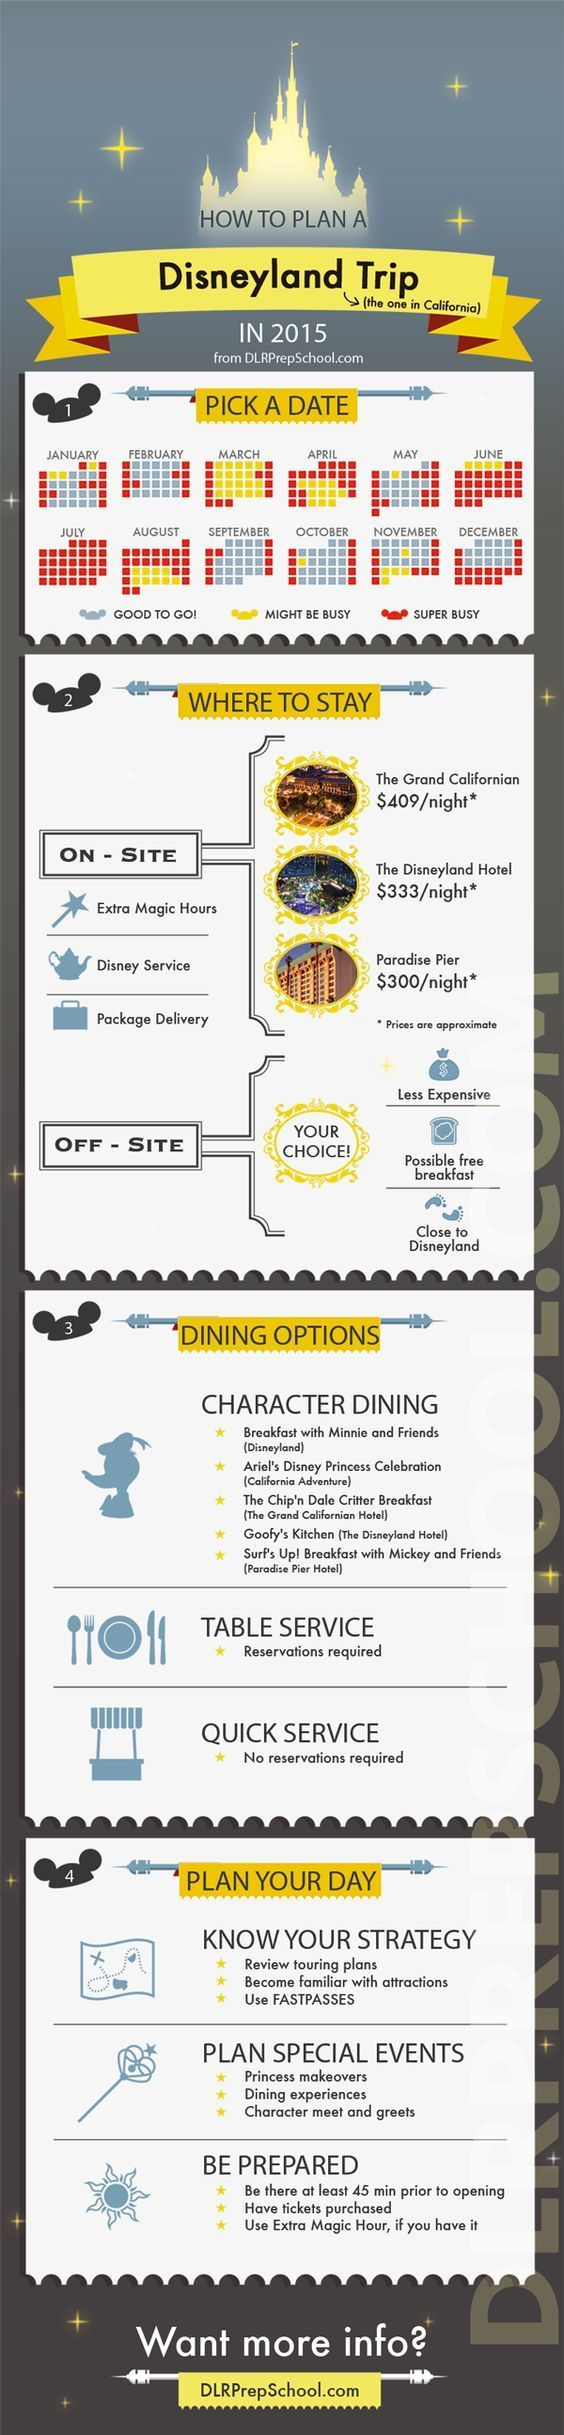 Great reference when planning Disneyland trips!